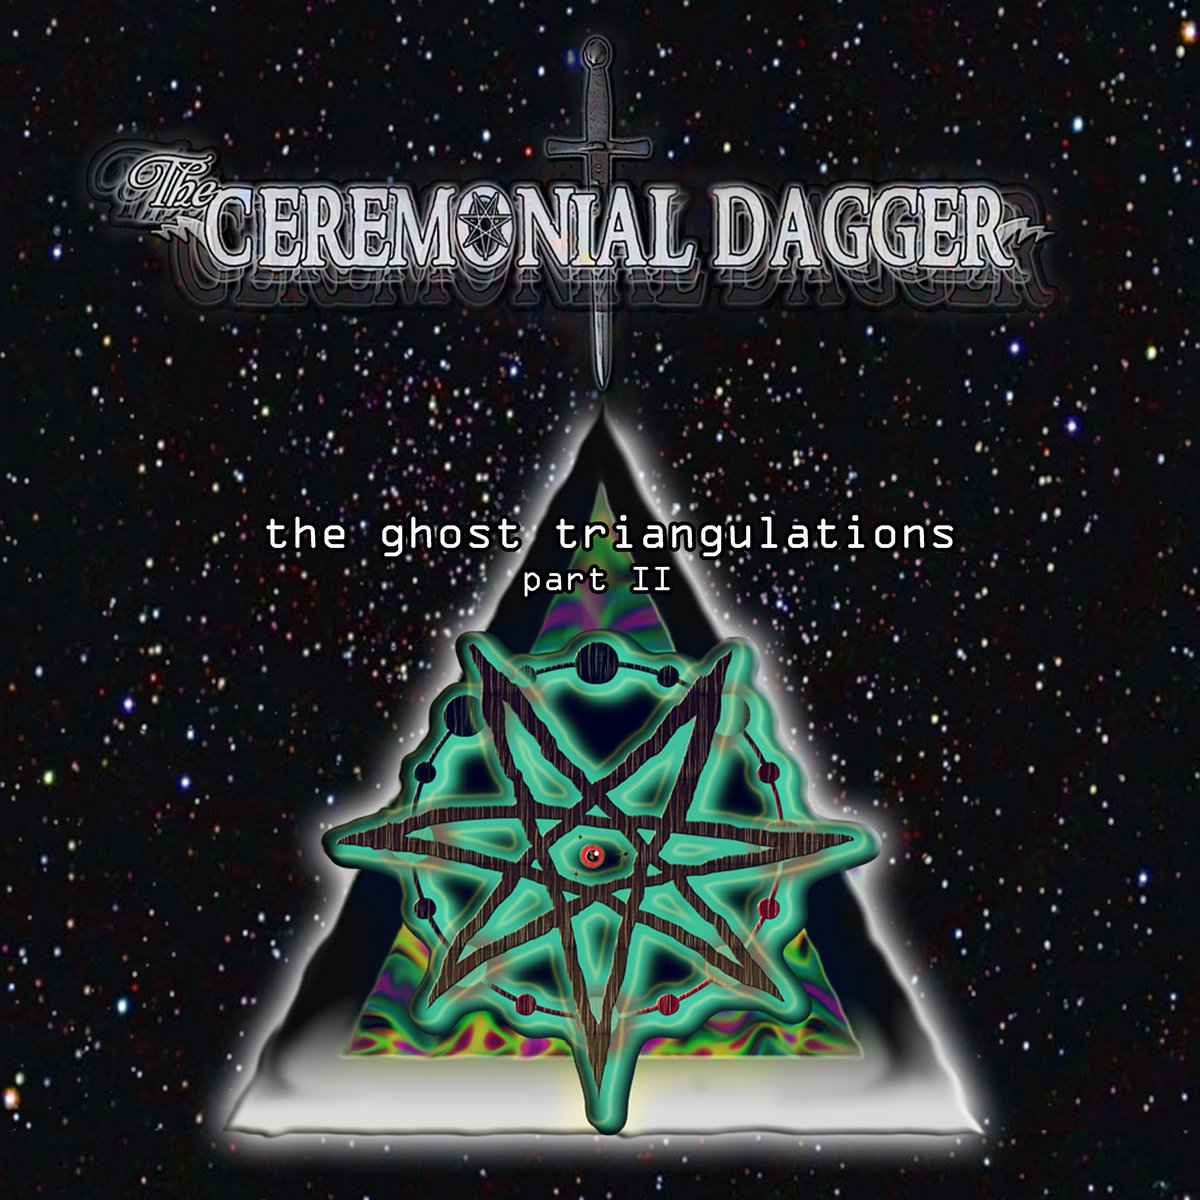 The Ceremonial Dagger - The Ghost Triangulations II